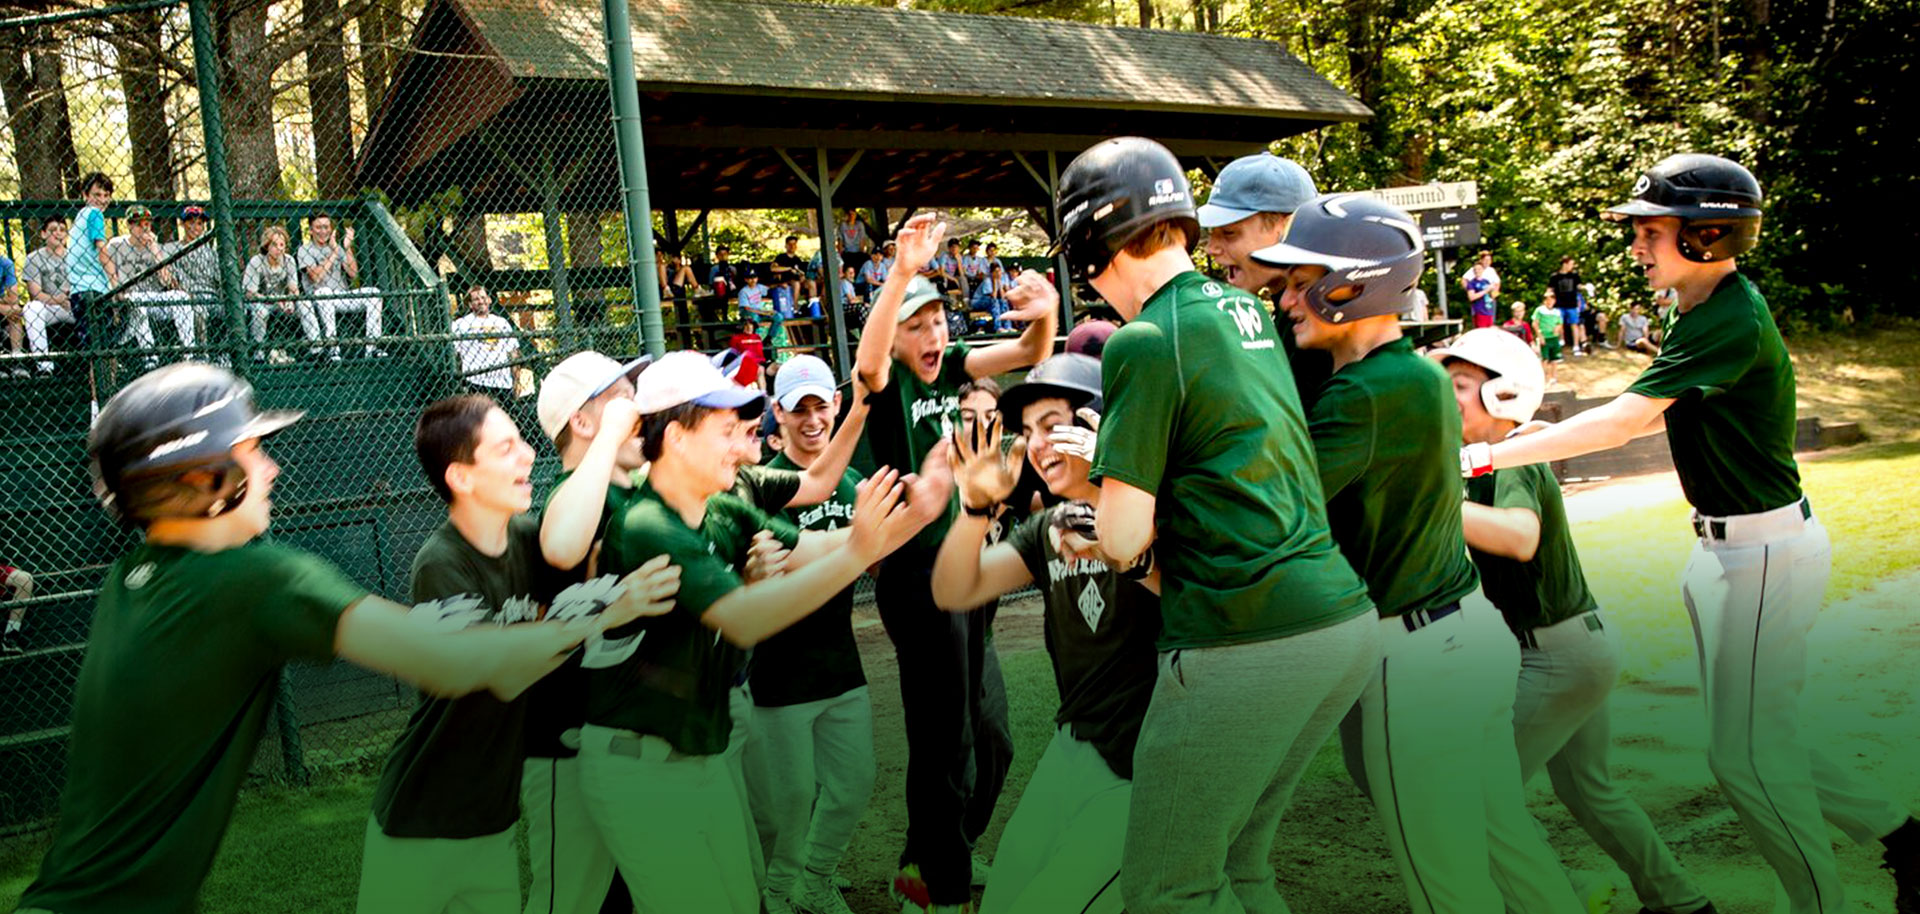 Sports done right at Brant Lake Camp in New York